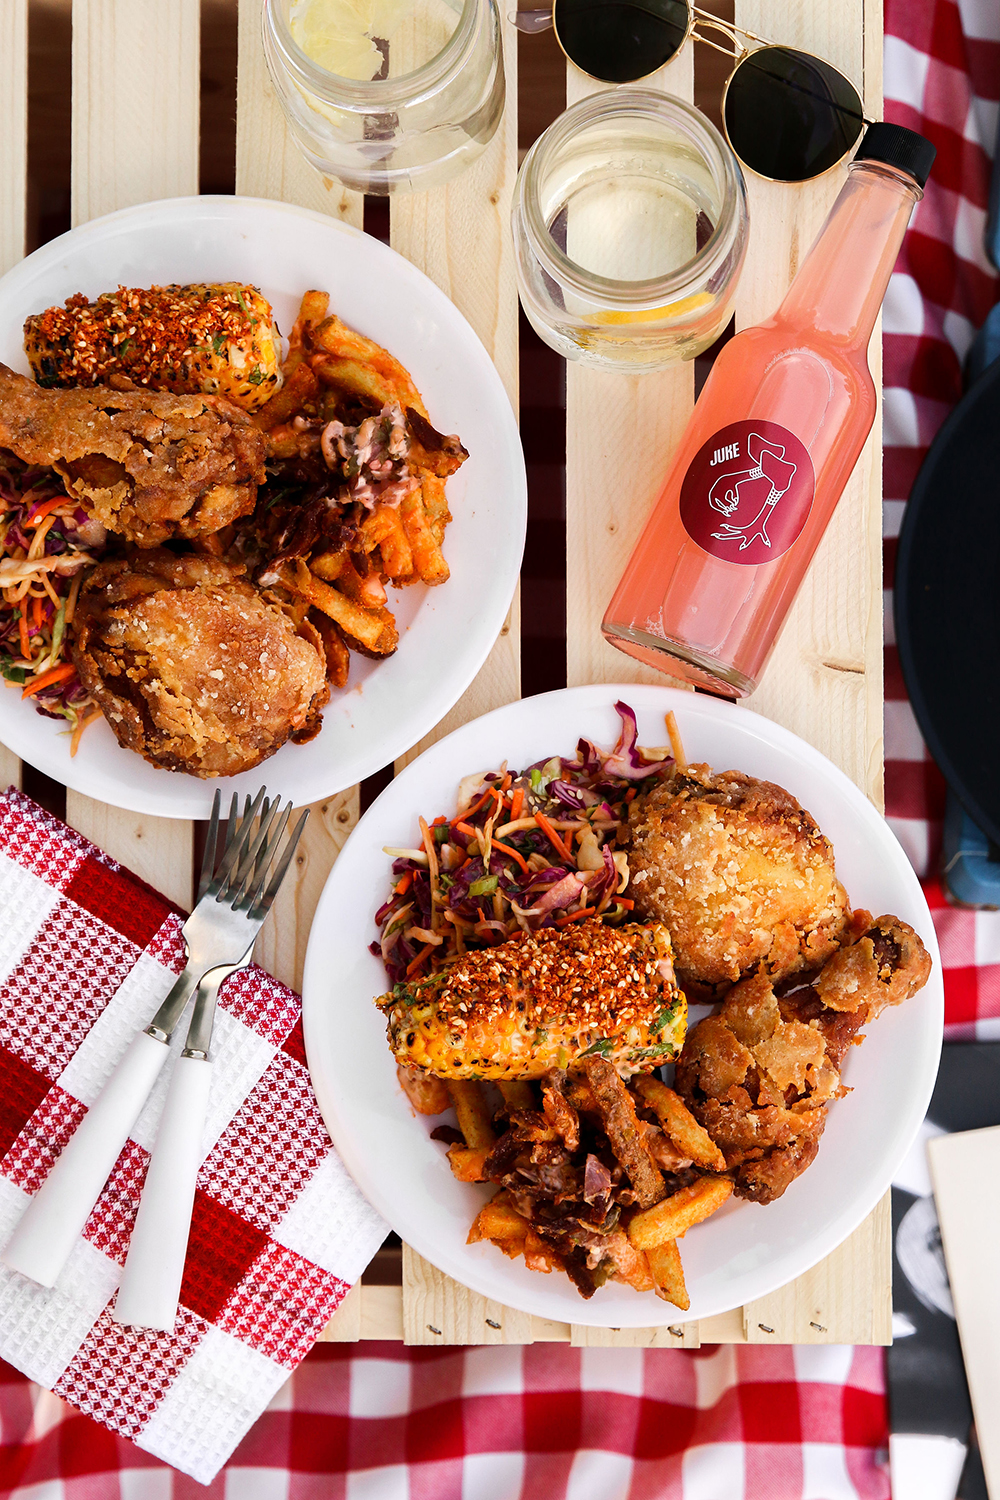 JUKE FRIED CHICKEN ADDS SIZZLE TO SUMMER SNACKING WITH NEW TAKE-AWAY 'BEACH BOXES' - June 14, 2019Juke Fried Chicken is adding its signature southern-fried sizzle to al-fresco outings this summer by introducing their new Juke Beach Boxes available for pick-up exclusively at 'Little Juke' located in Vancouver's beachside West End neighbourhood at 1074 Davie Street.Perfect for two to share at the beach or park for lunch, dinner or a sunset snack, each Juke Beach Box includes four pieces of Juke's signature southern-style fried chicken, two pieces of chili corn on the cob, all-dressed fries and east Asian peanut slaw as well as a non-alcoholic cocktail mixer, reusable napkin, utensils and two red Solo cups.Available for $34 plus tax, Juke's Beach Box can be ordered online or in store and available for pickup at Little Juke from 11 a.m. to 10:30 p.m.